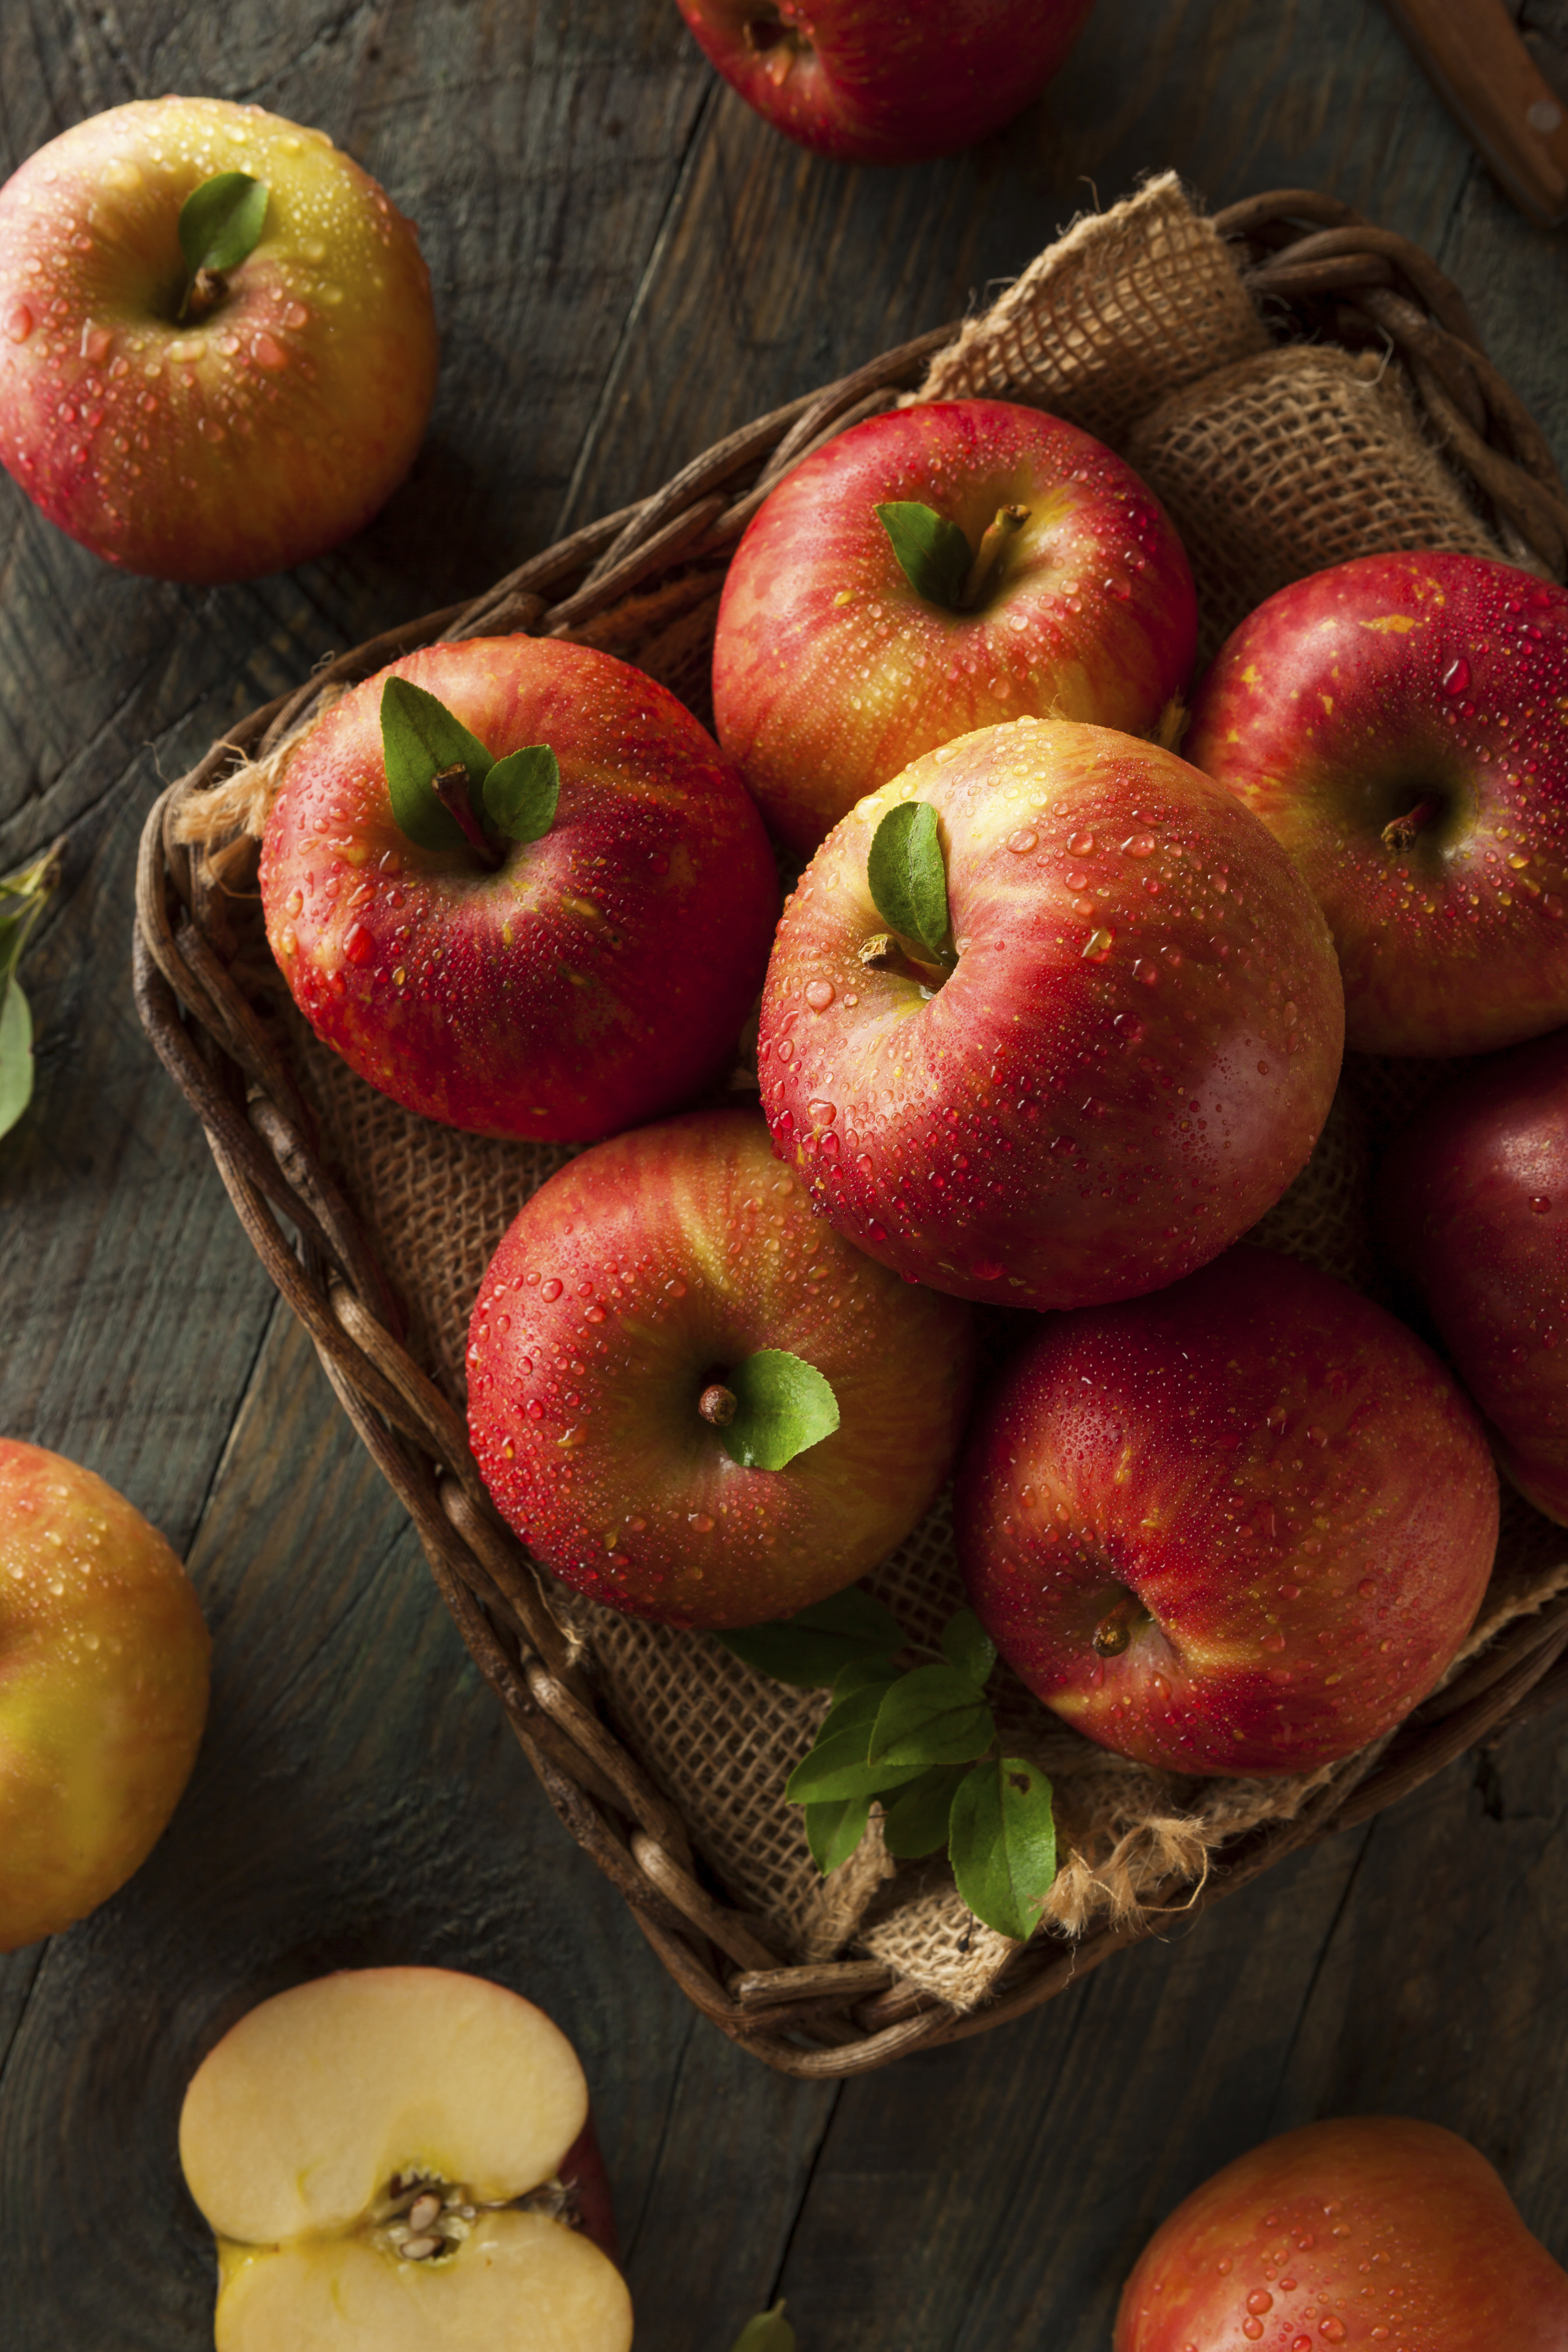 Raw Red Fuji Apples in a Basket